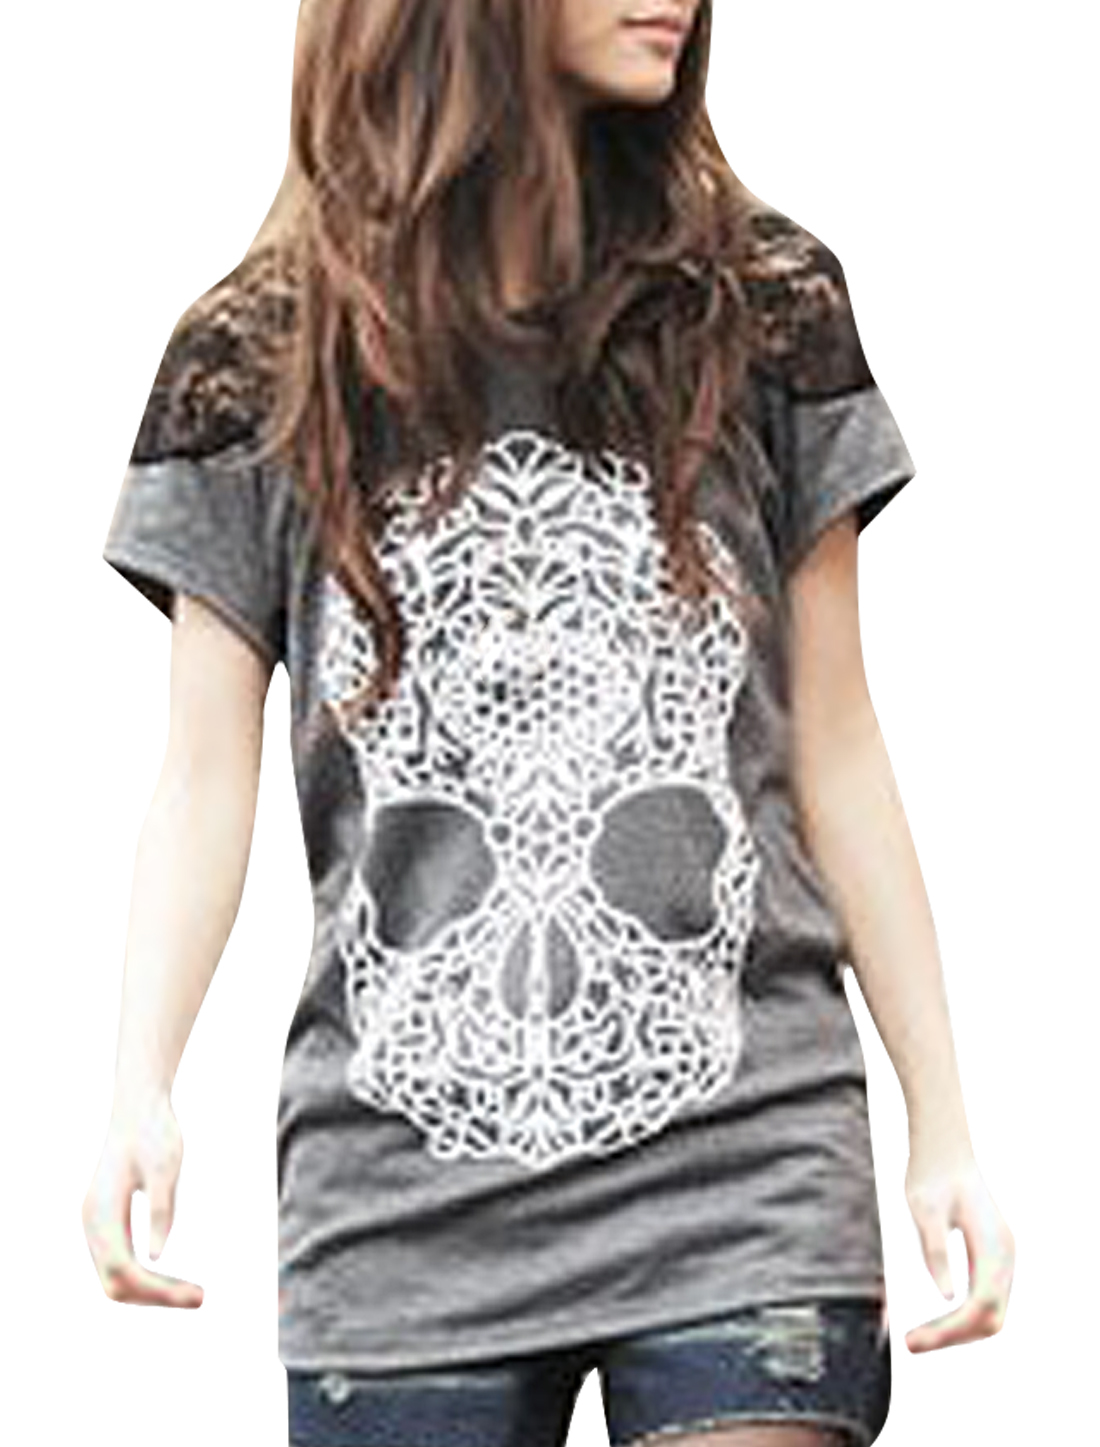 Scoop Neck Skull Pattern Front Light Gray Shirt S for Ladies